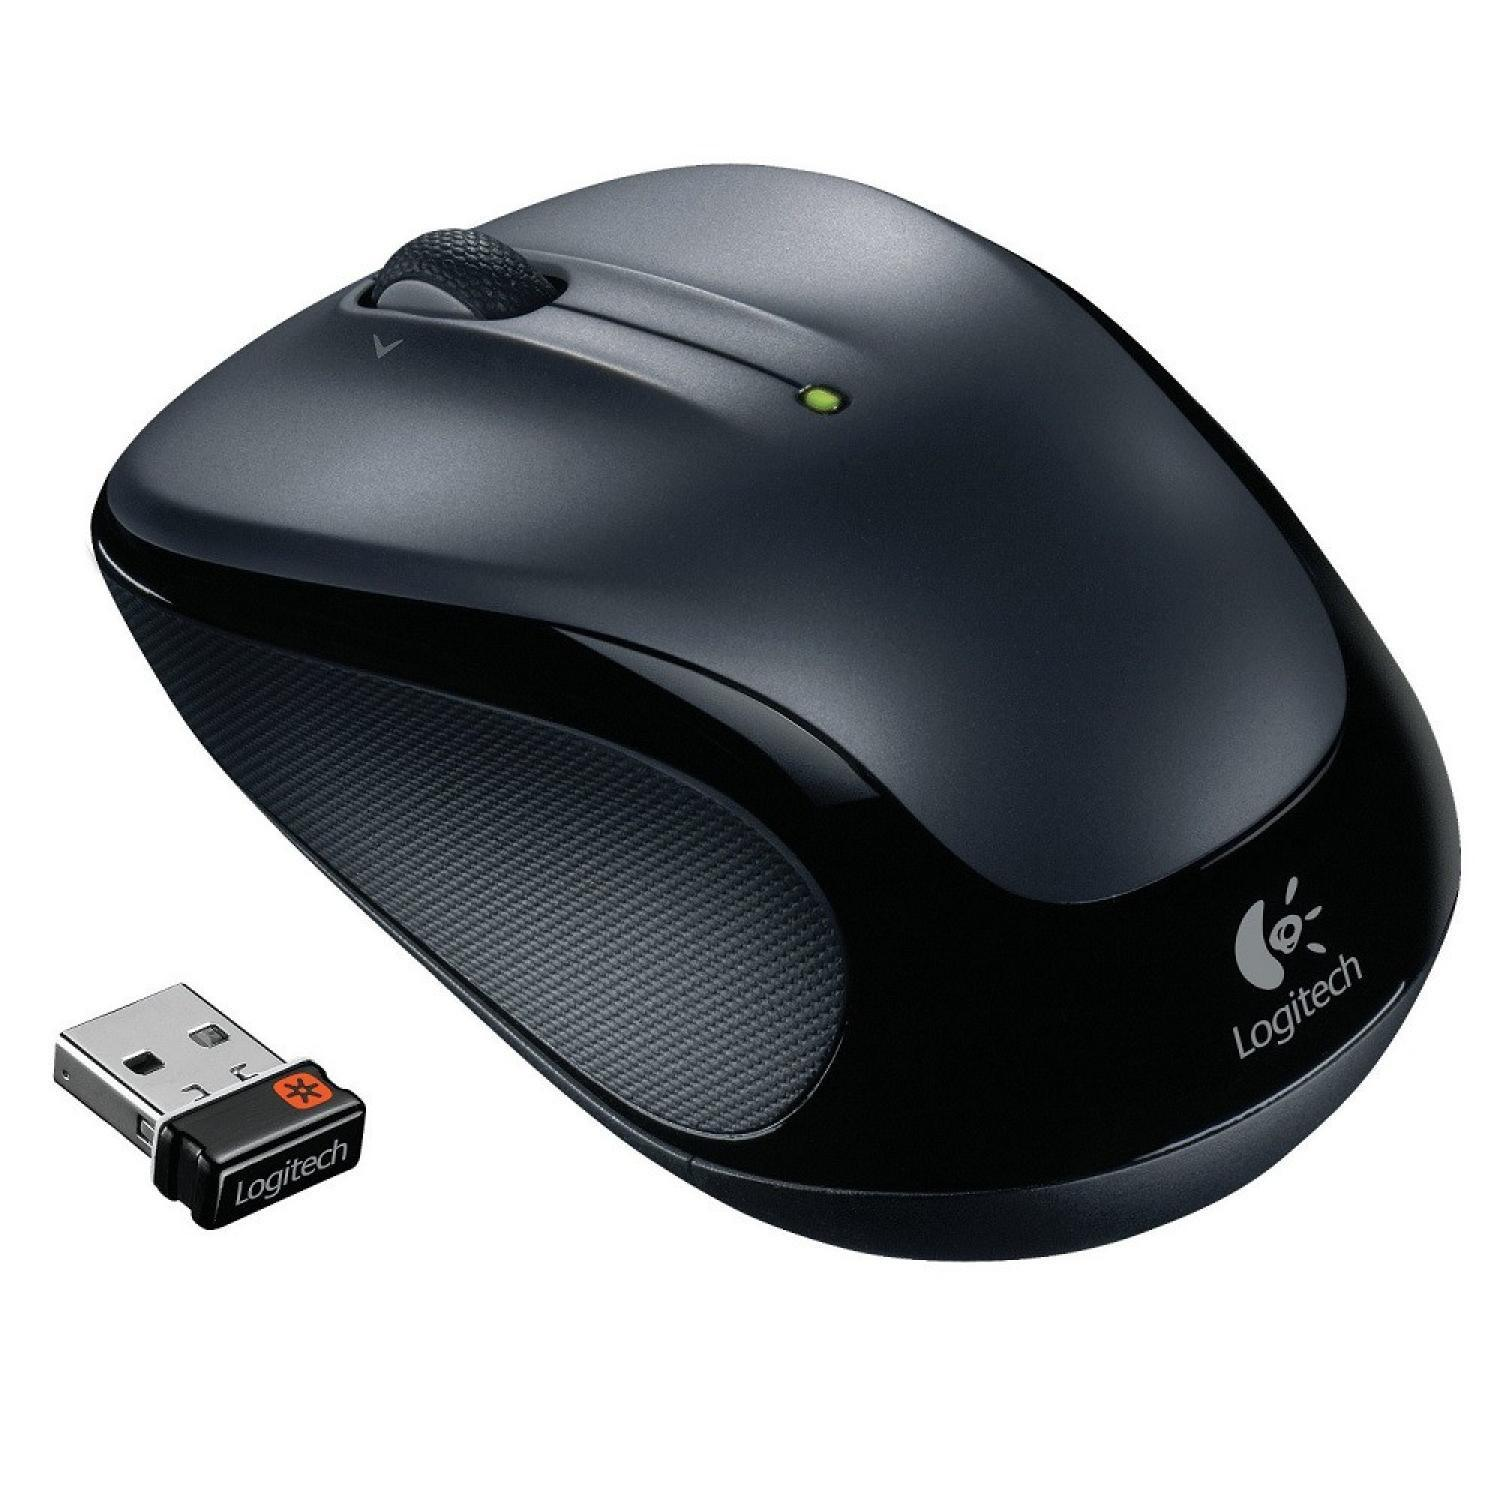 Best Seller!!! Original Mouse Logitech Wireless Mouse - M325